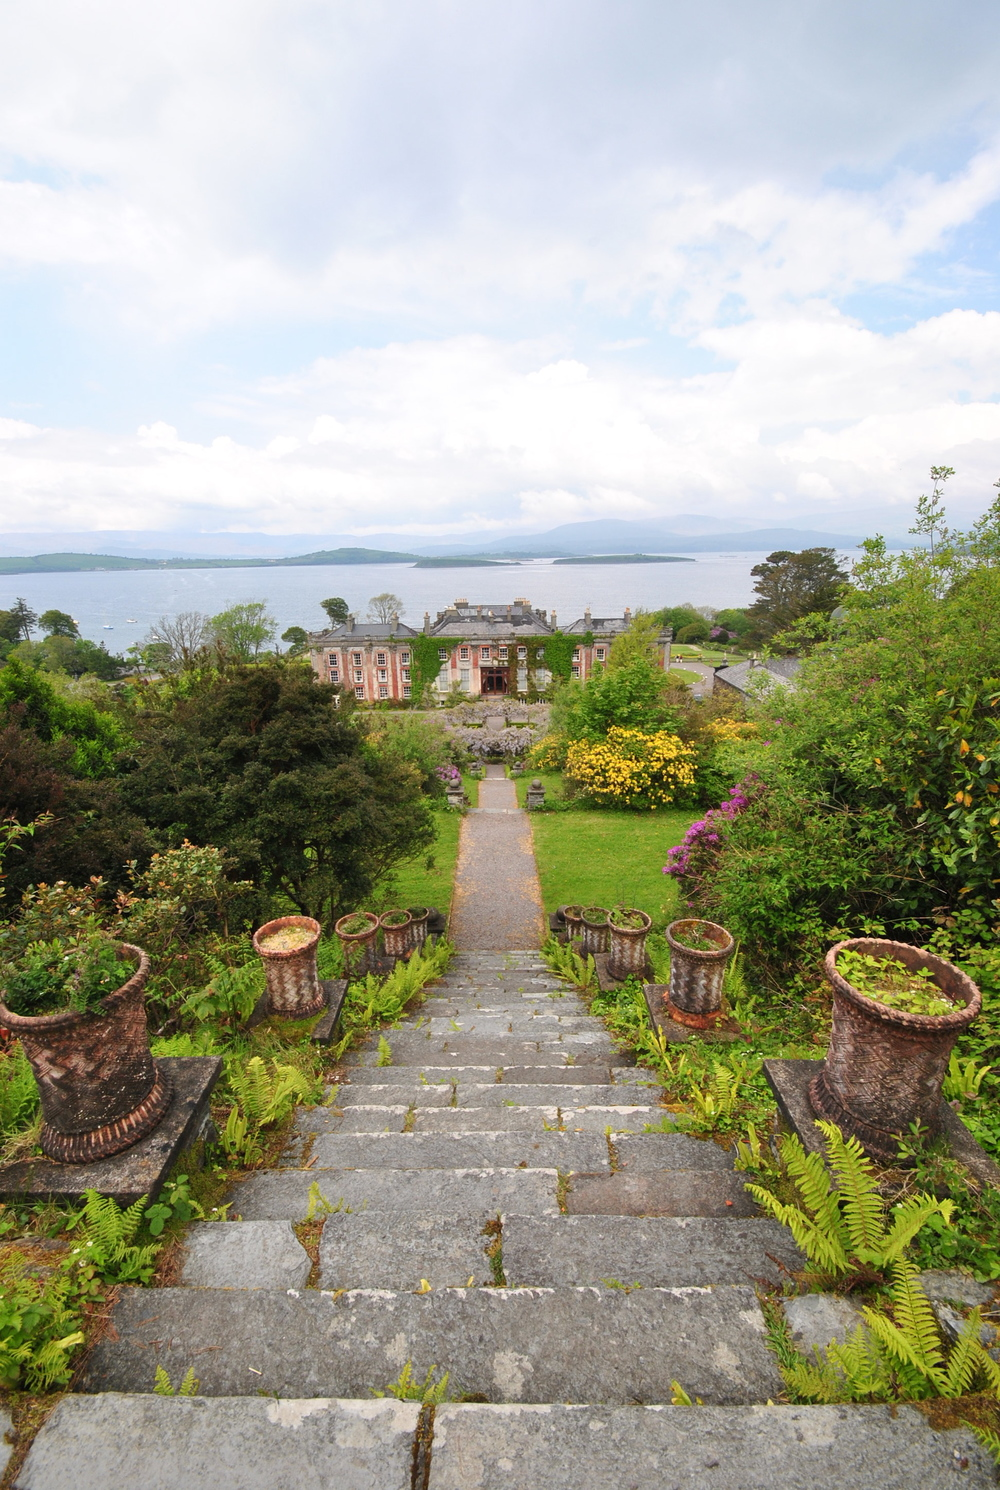 At the top of 100+ steps at Bantry House & Garden http://www.bantryhouse.com/bantryhouse/